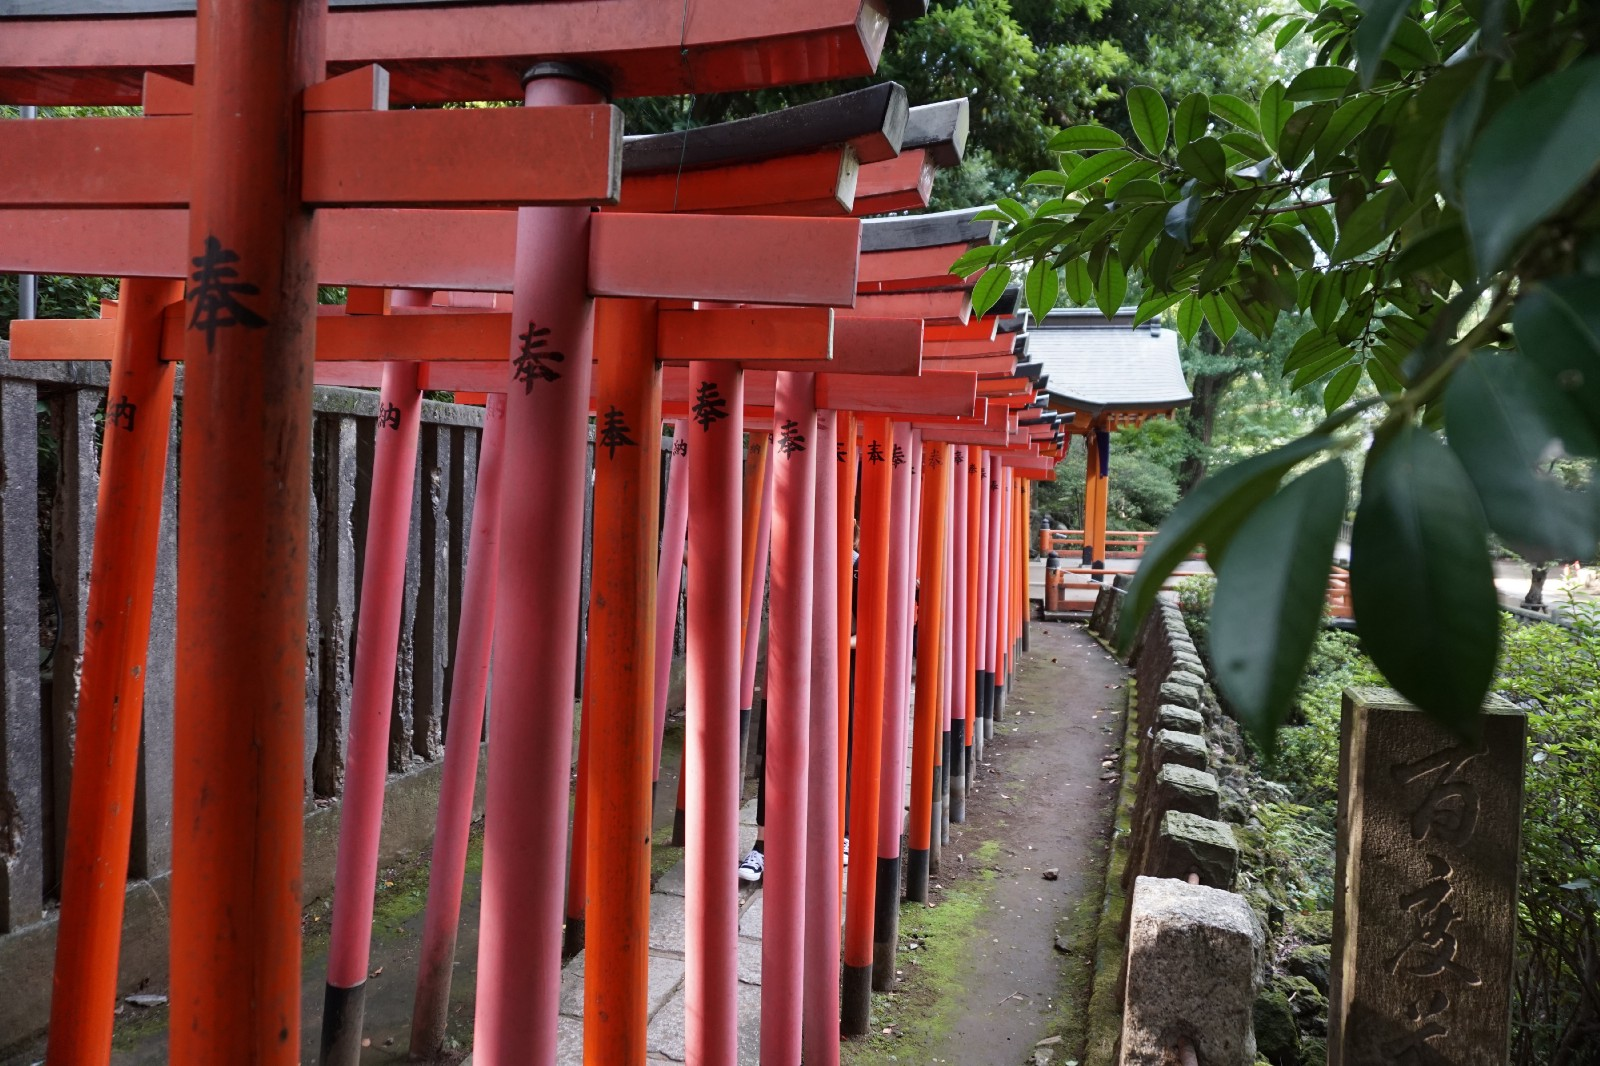 The torii gates tunnel at Nezu Shrine in Tokyo